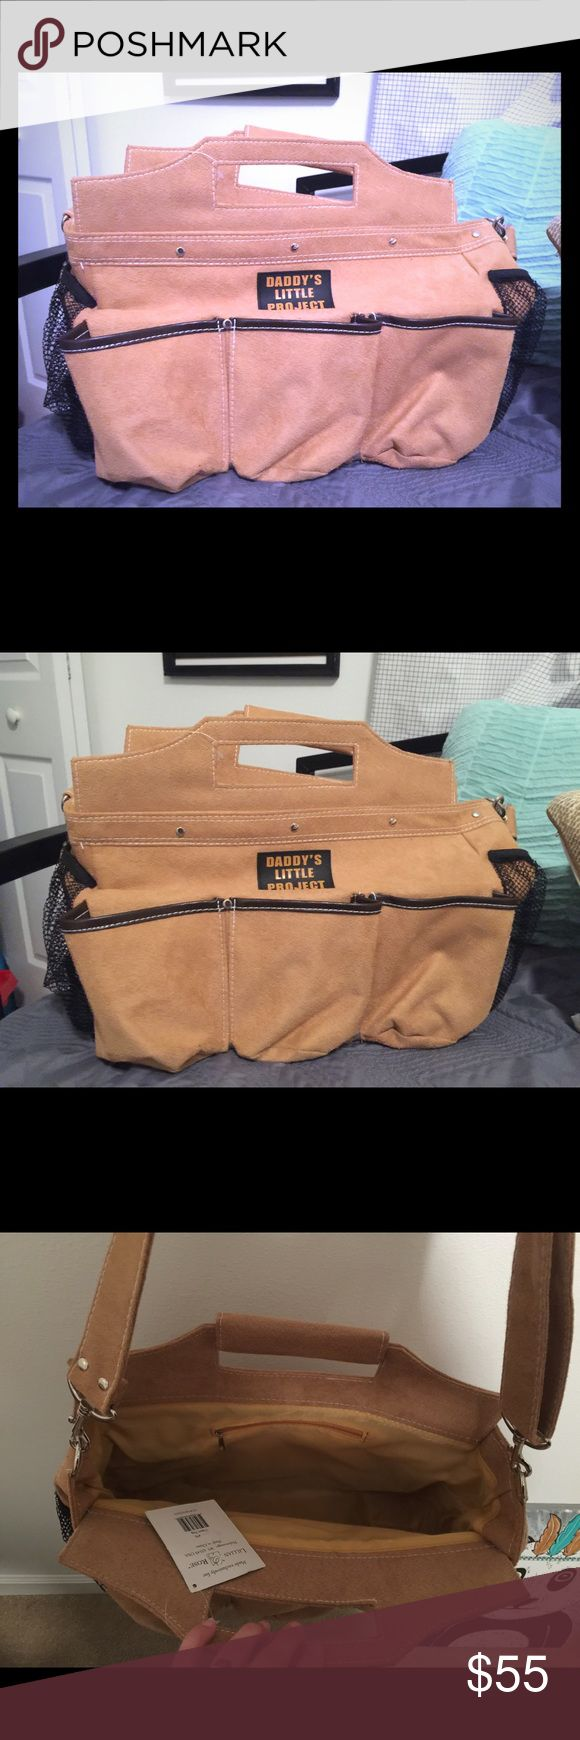 """Daddy Diaper Bag /tool bag 👶🏼 soft suede """"daddy's little project"""" suede diaper bag, a manly bag great for daddy's time with baby❤️never used, NWT Accessories Bags"""